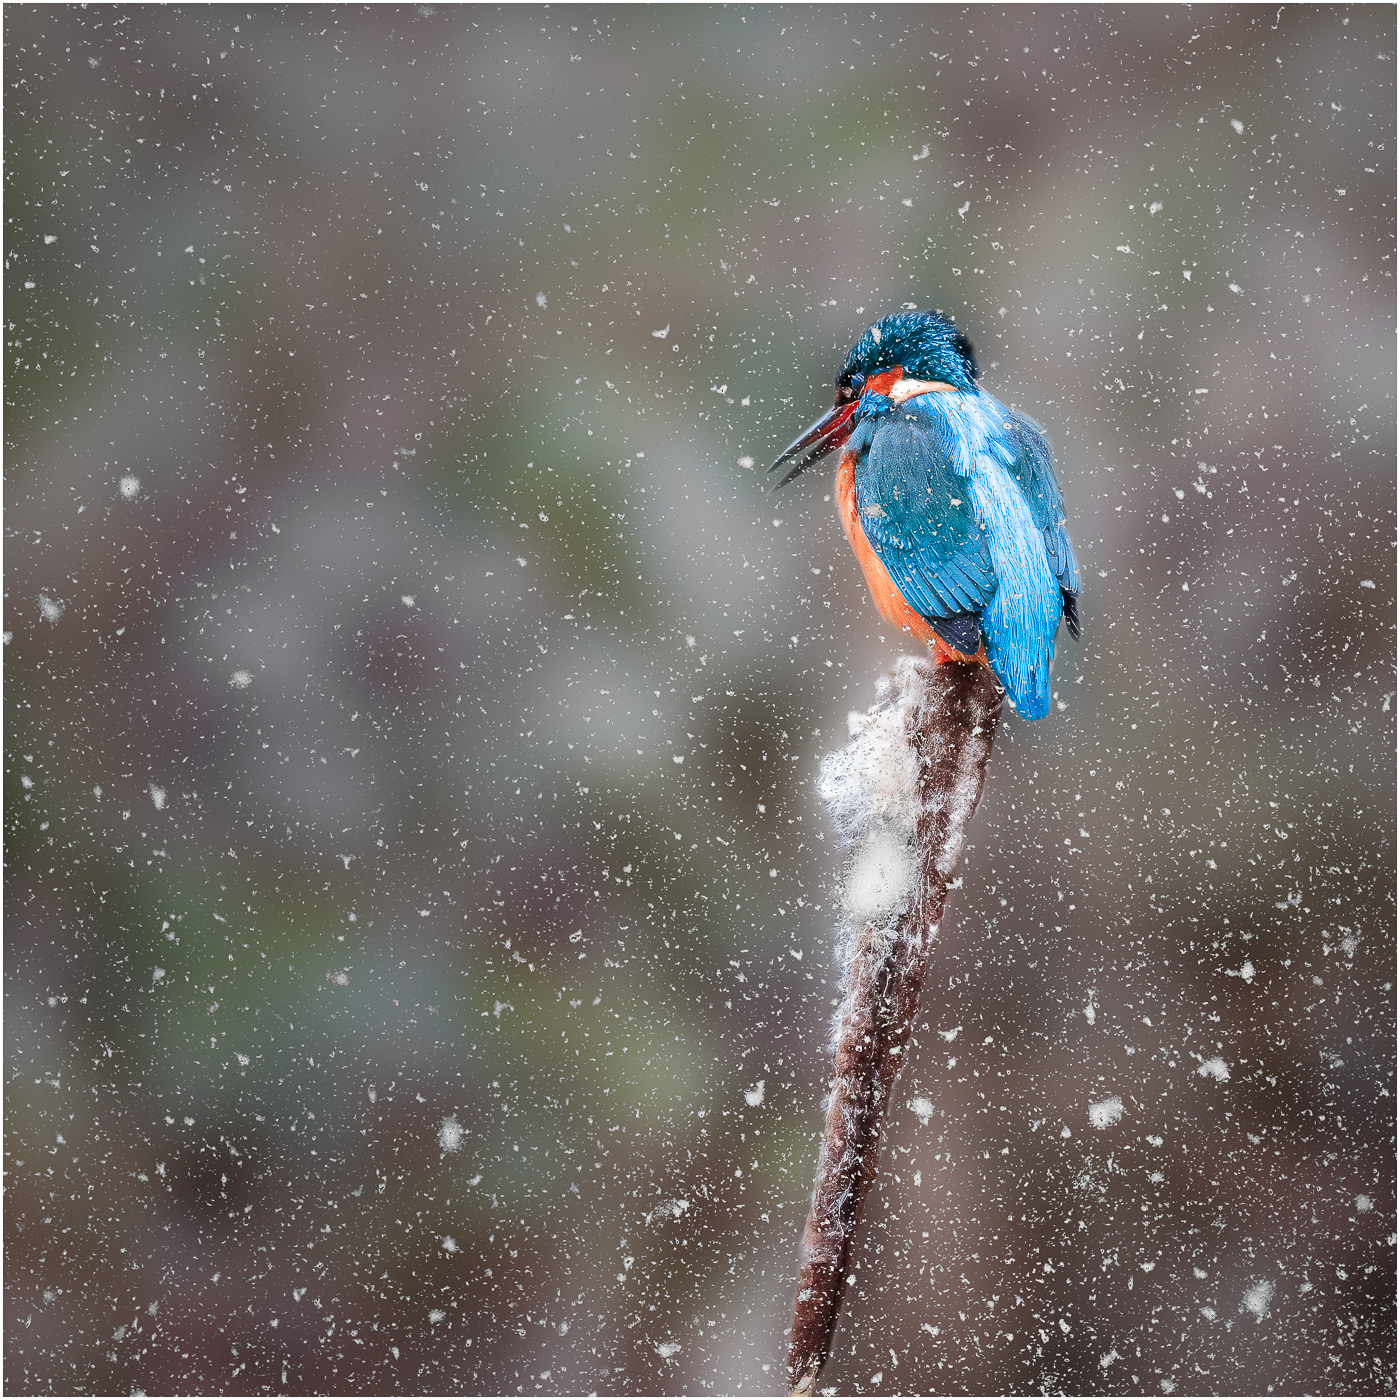 KINGFISHER IN SNOW by Jack Worsnop